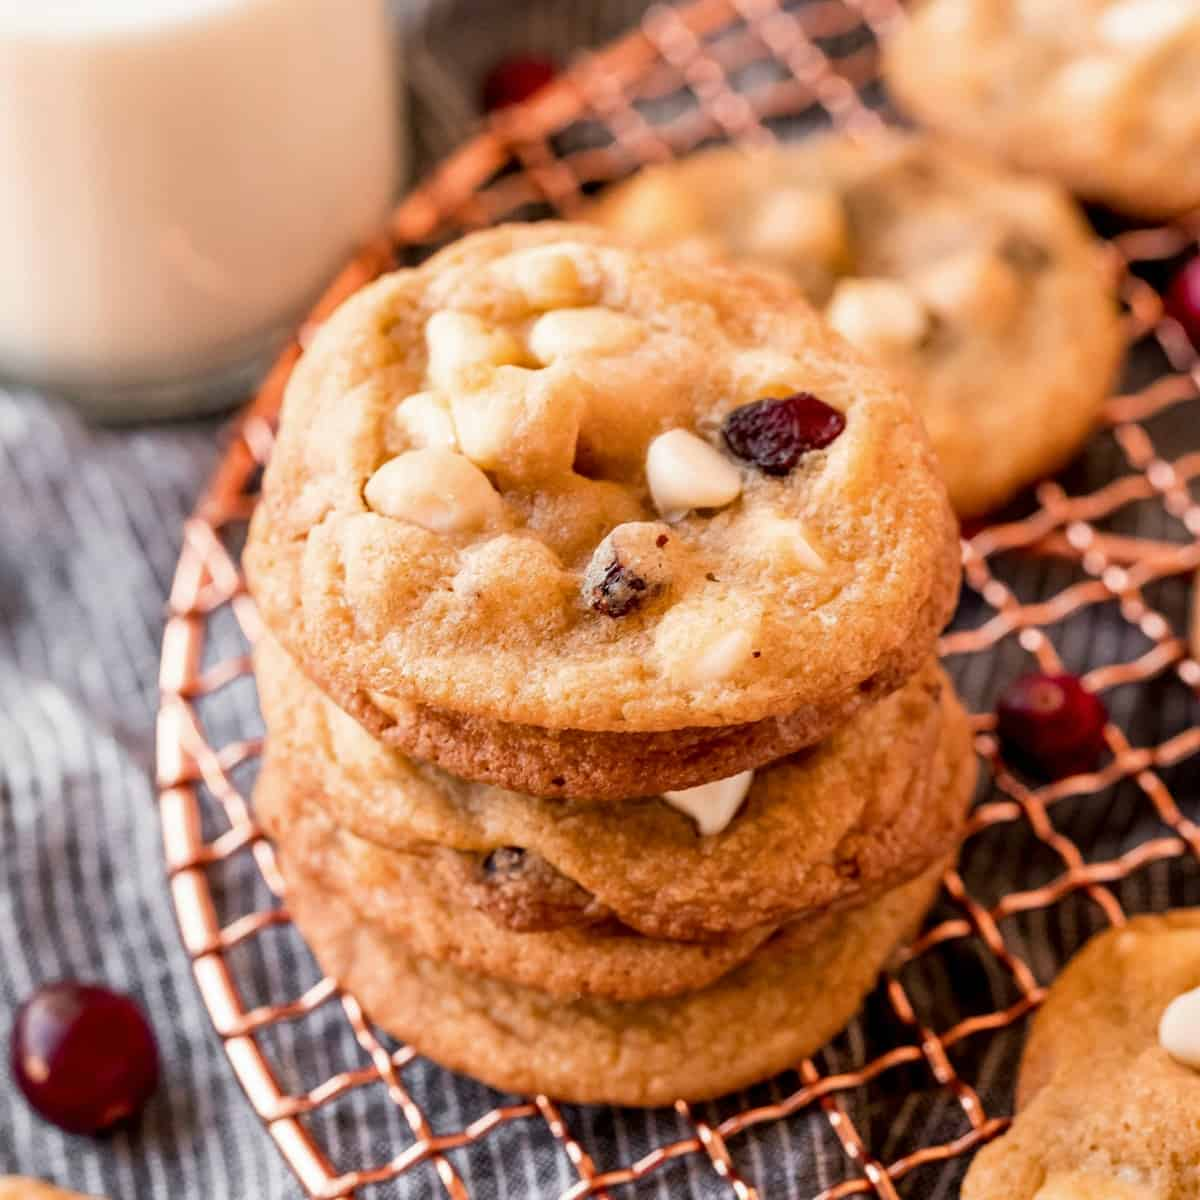 Macadamia Nut Cookies stacked on cooling rack square image